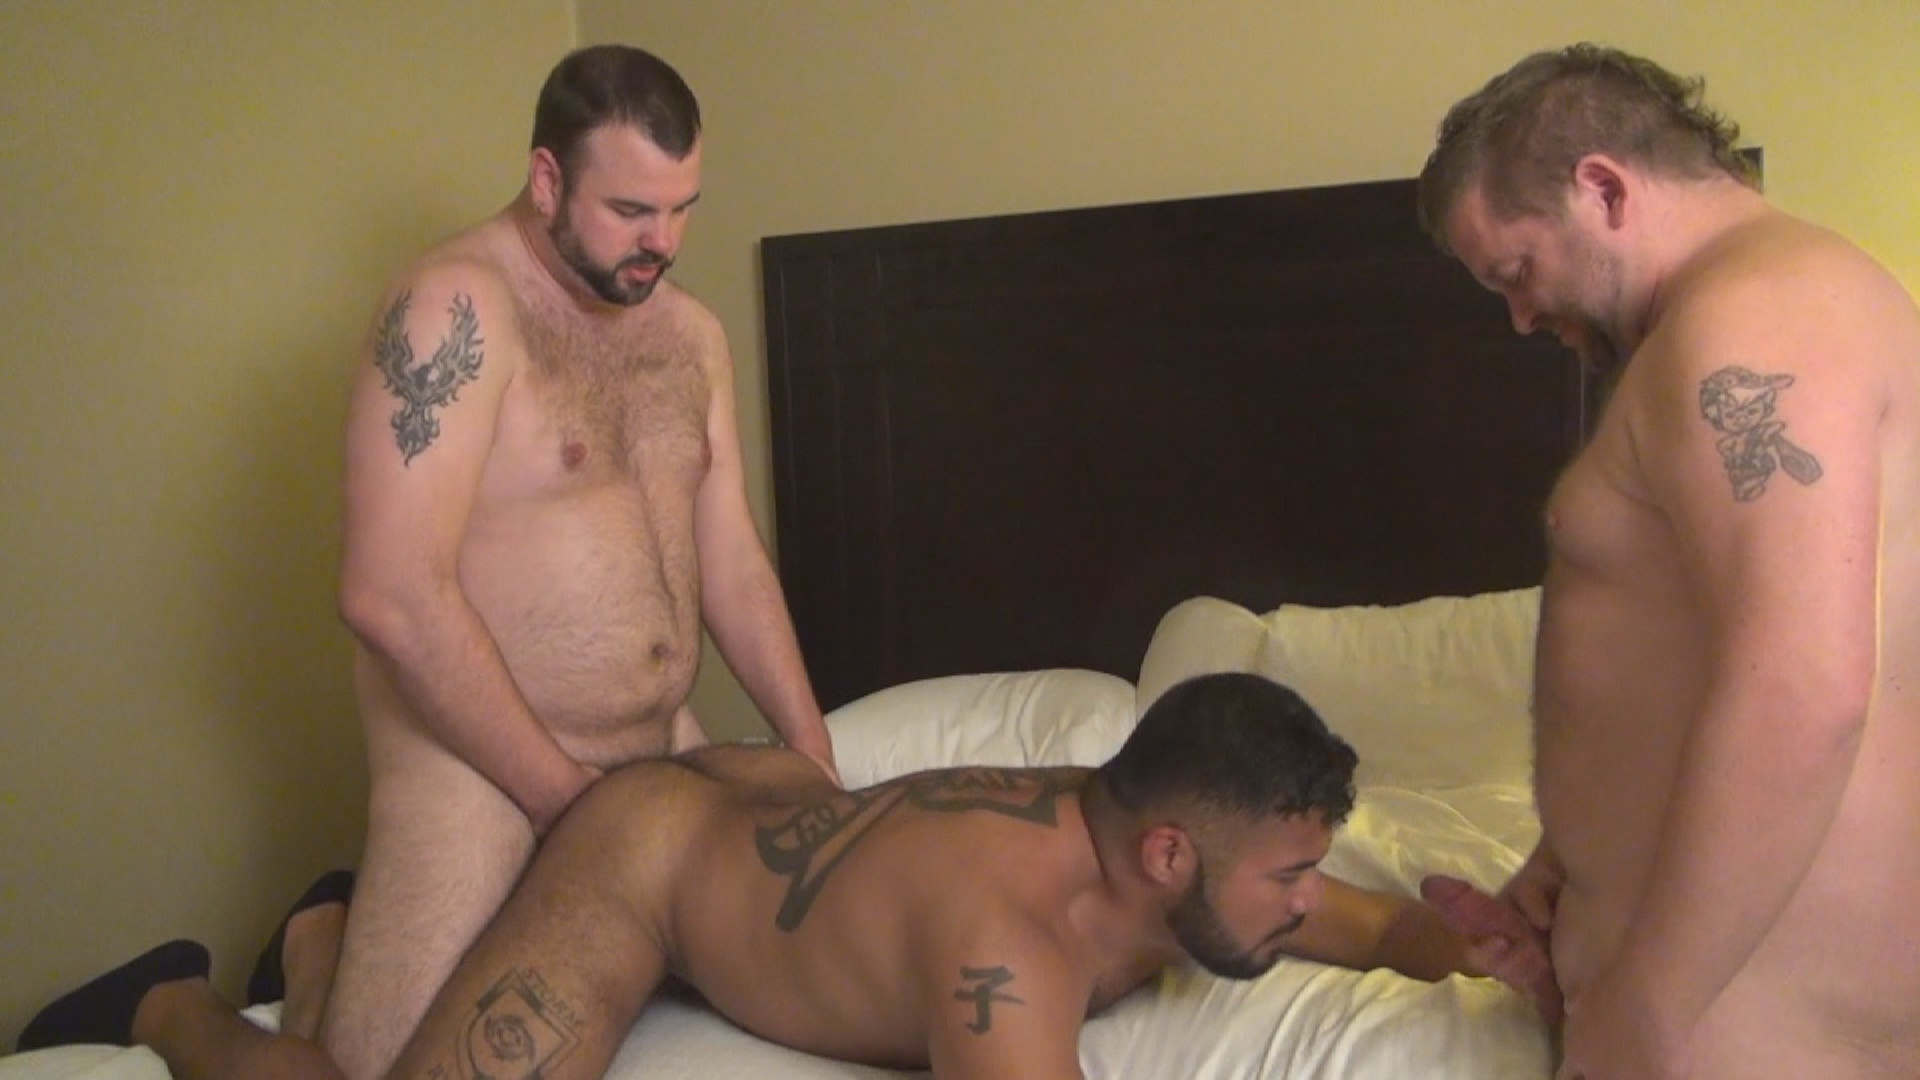 Hot Raw Bears Xvideo gay